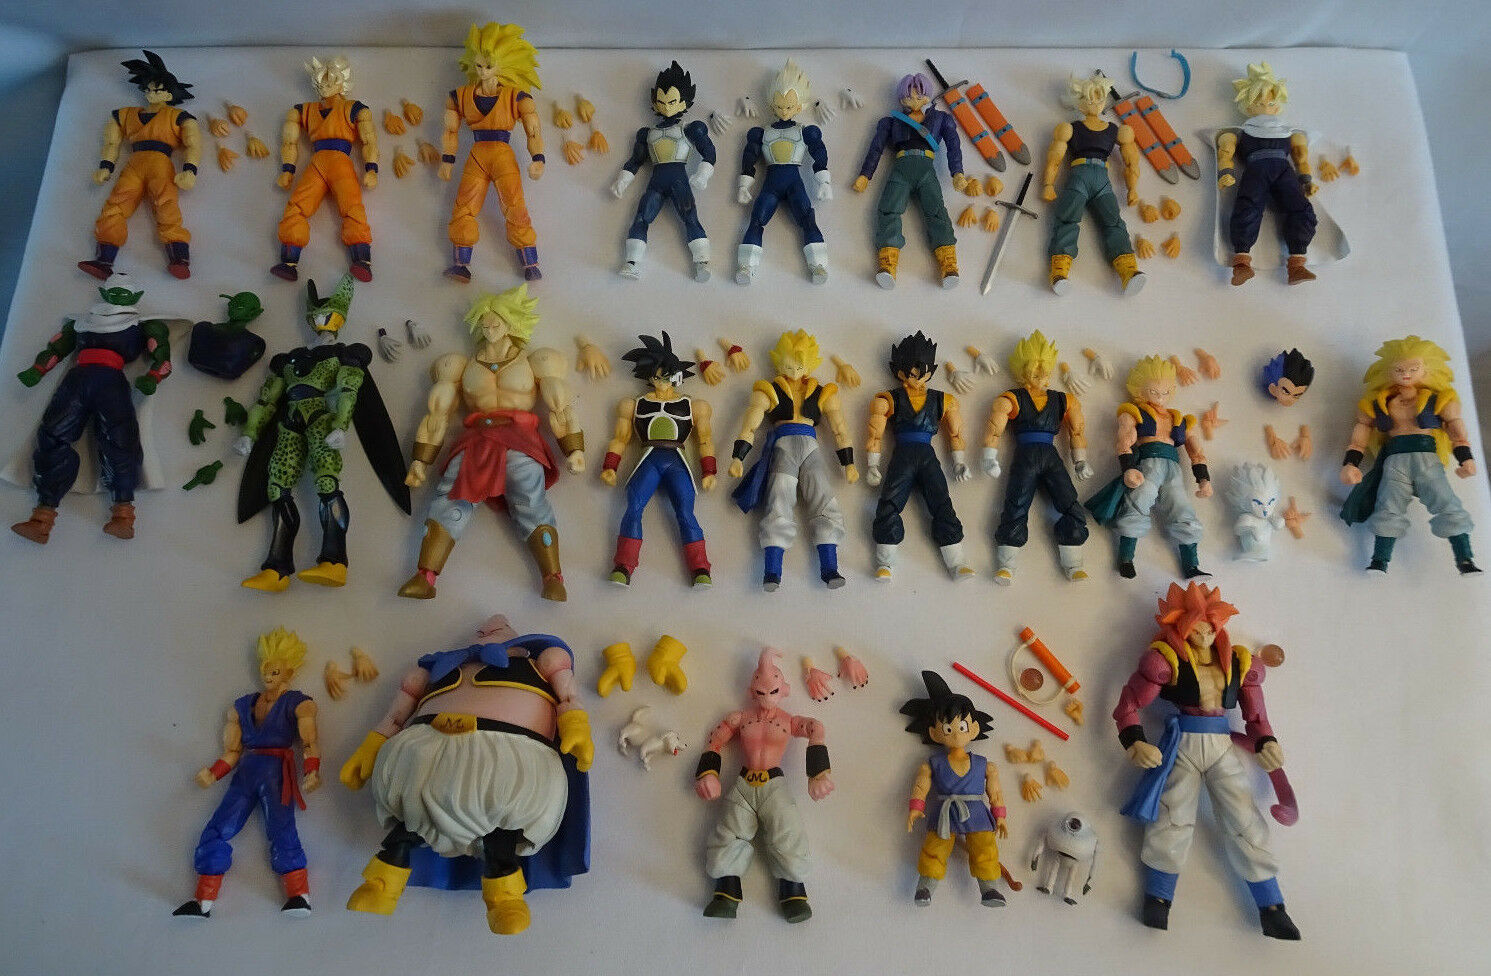 Dragonball Z DBGT - Lot of 22 DBZ Hybrid Action Figures 2007 Bandai RARE